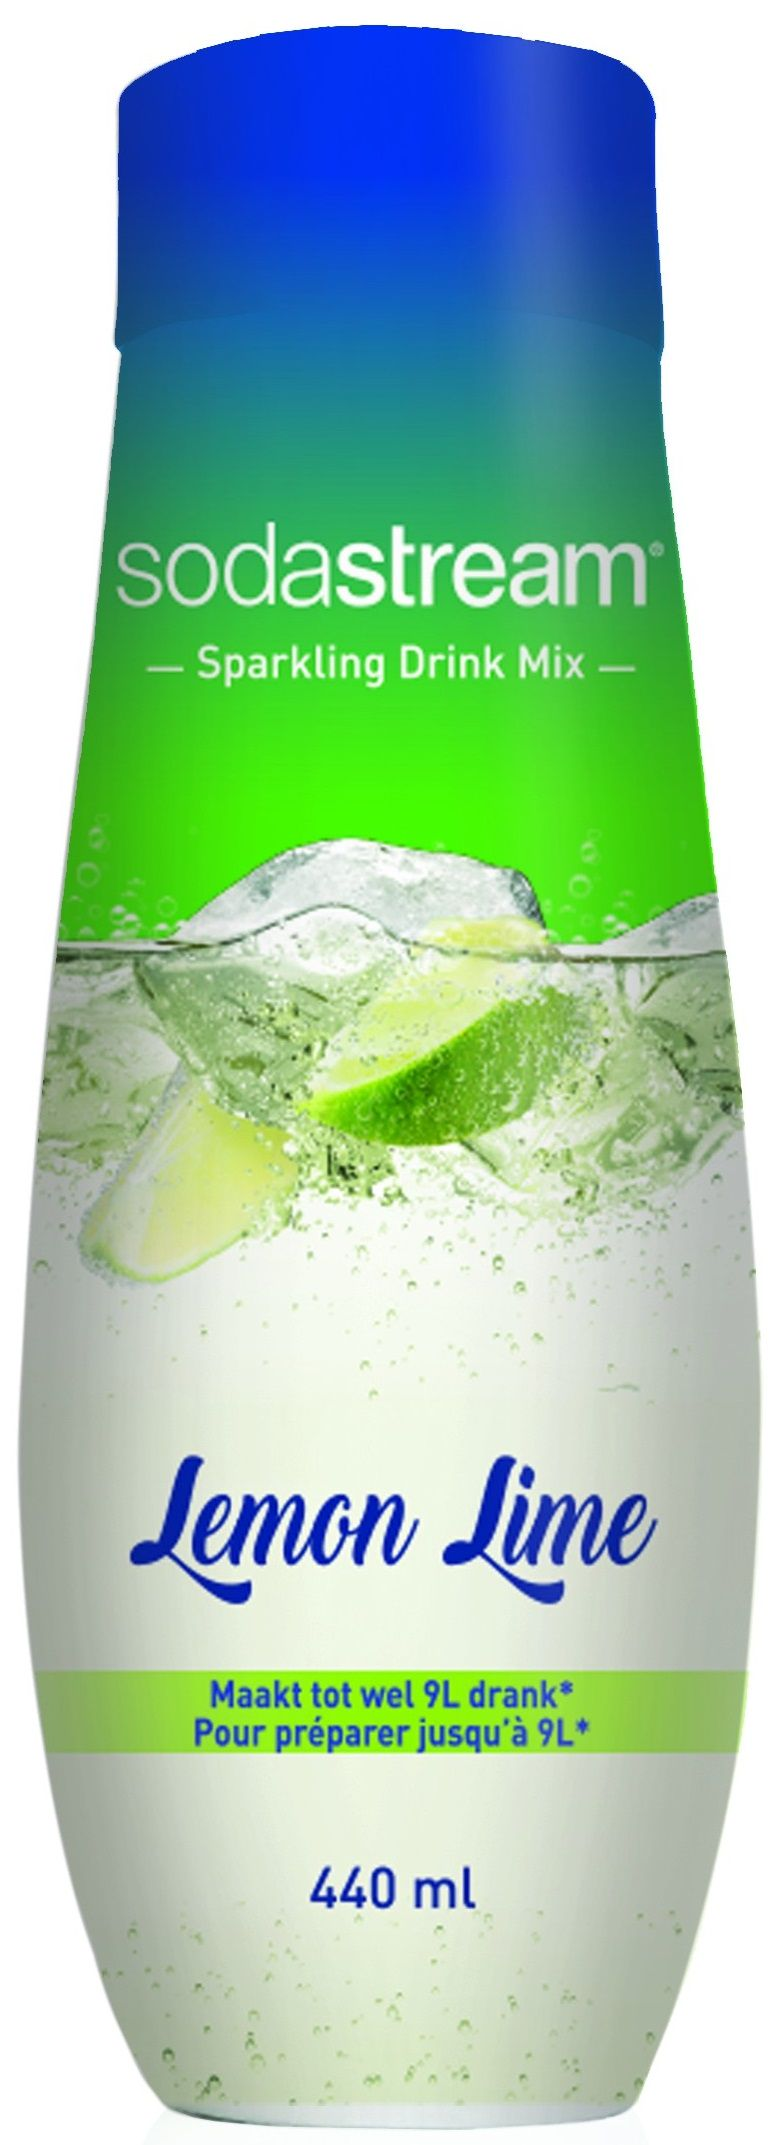 SodaStream_Siroop_Lemon_Lime_440ml